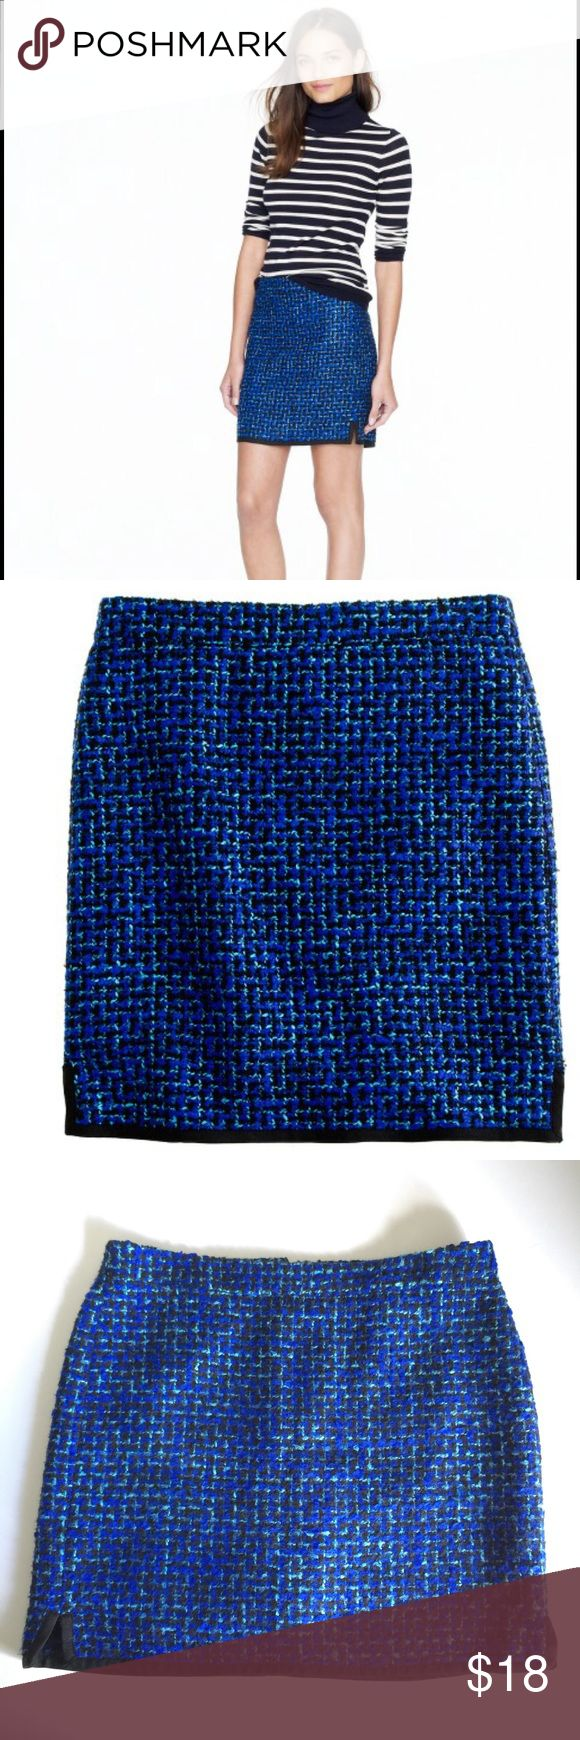 """J. Crew Postage Stamp Mini in Indigo Tweed Size 8 J. Crew Postage Stamp Mini in Indigo Tweed. Crafted in a subtle A-line shape to hang off the hip, it's absolutely of the moment in an indigo tweed that makes your entire wardrobe pop. Size 8.  Acrylic/poly/wool/cotton. Sits above waist. Back zip. 16 1/2"""" long. Lined. Dry clean. J. Crew Skirts Mini"""